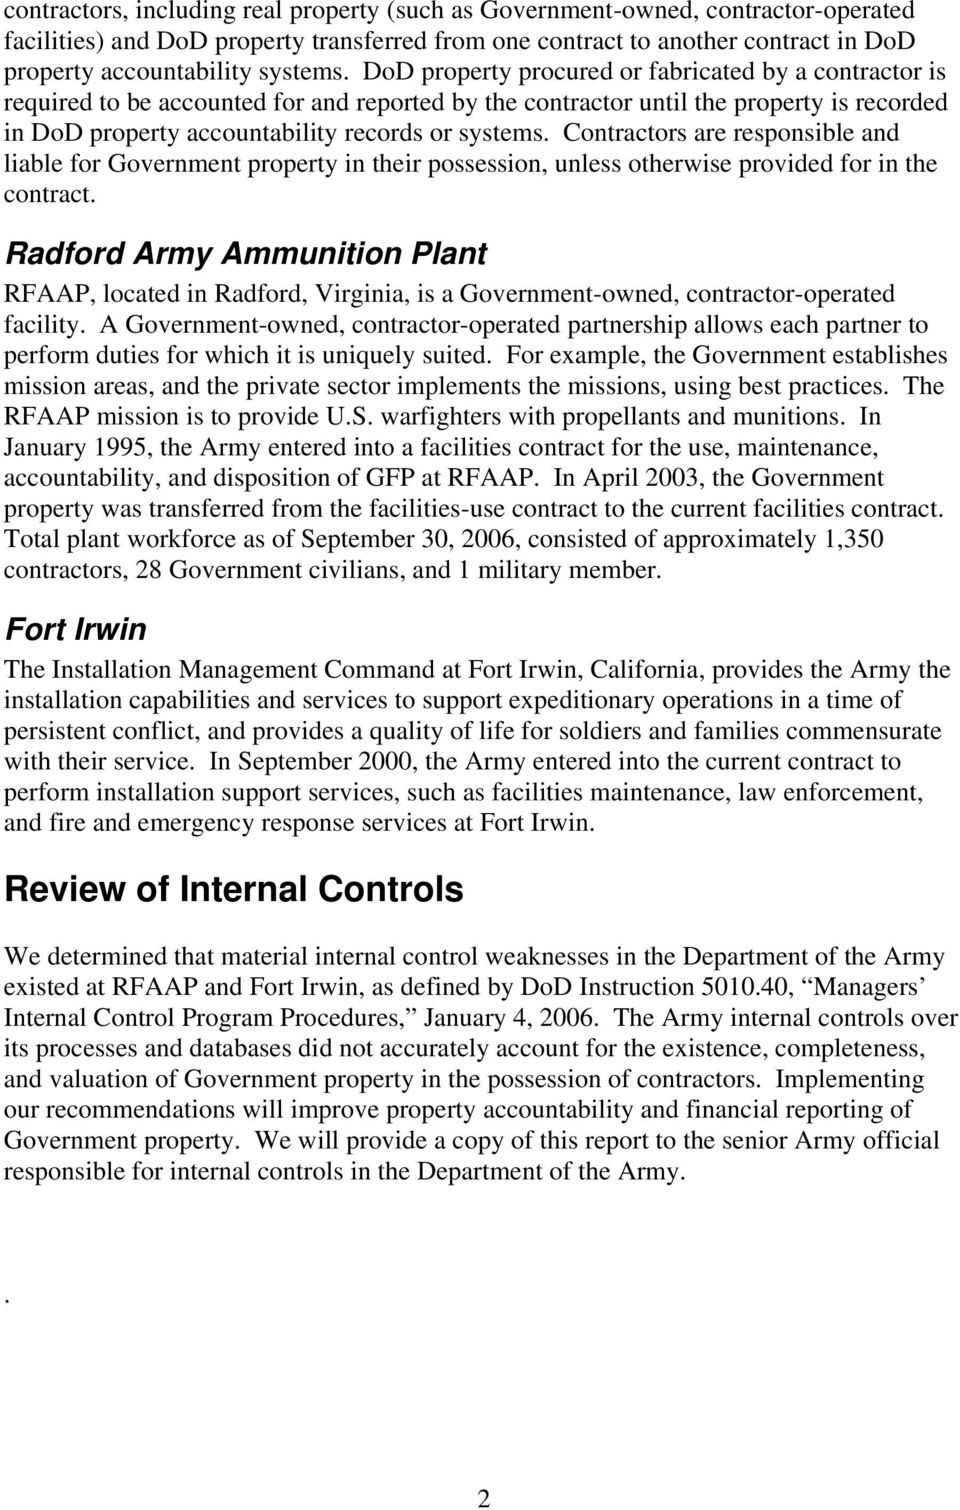 DoD property procured or fabricated by a contractor is required to be accounted for and reported by the contractor until the property is recorded in DoD property accountability records or